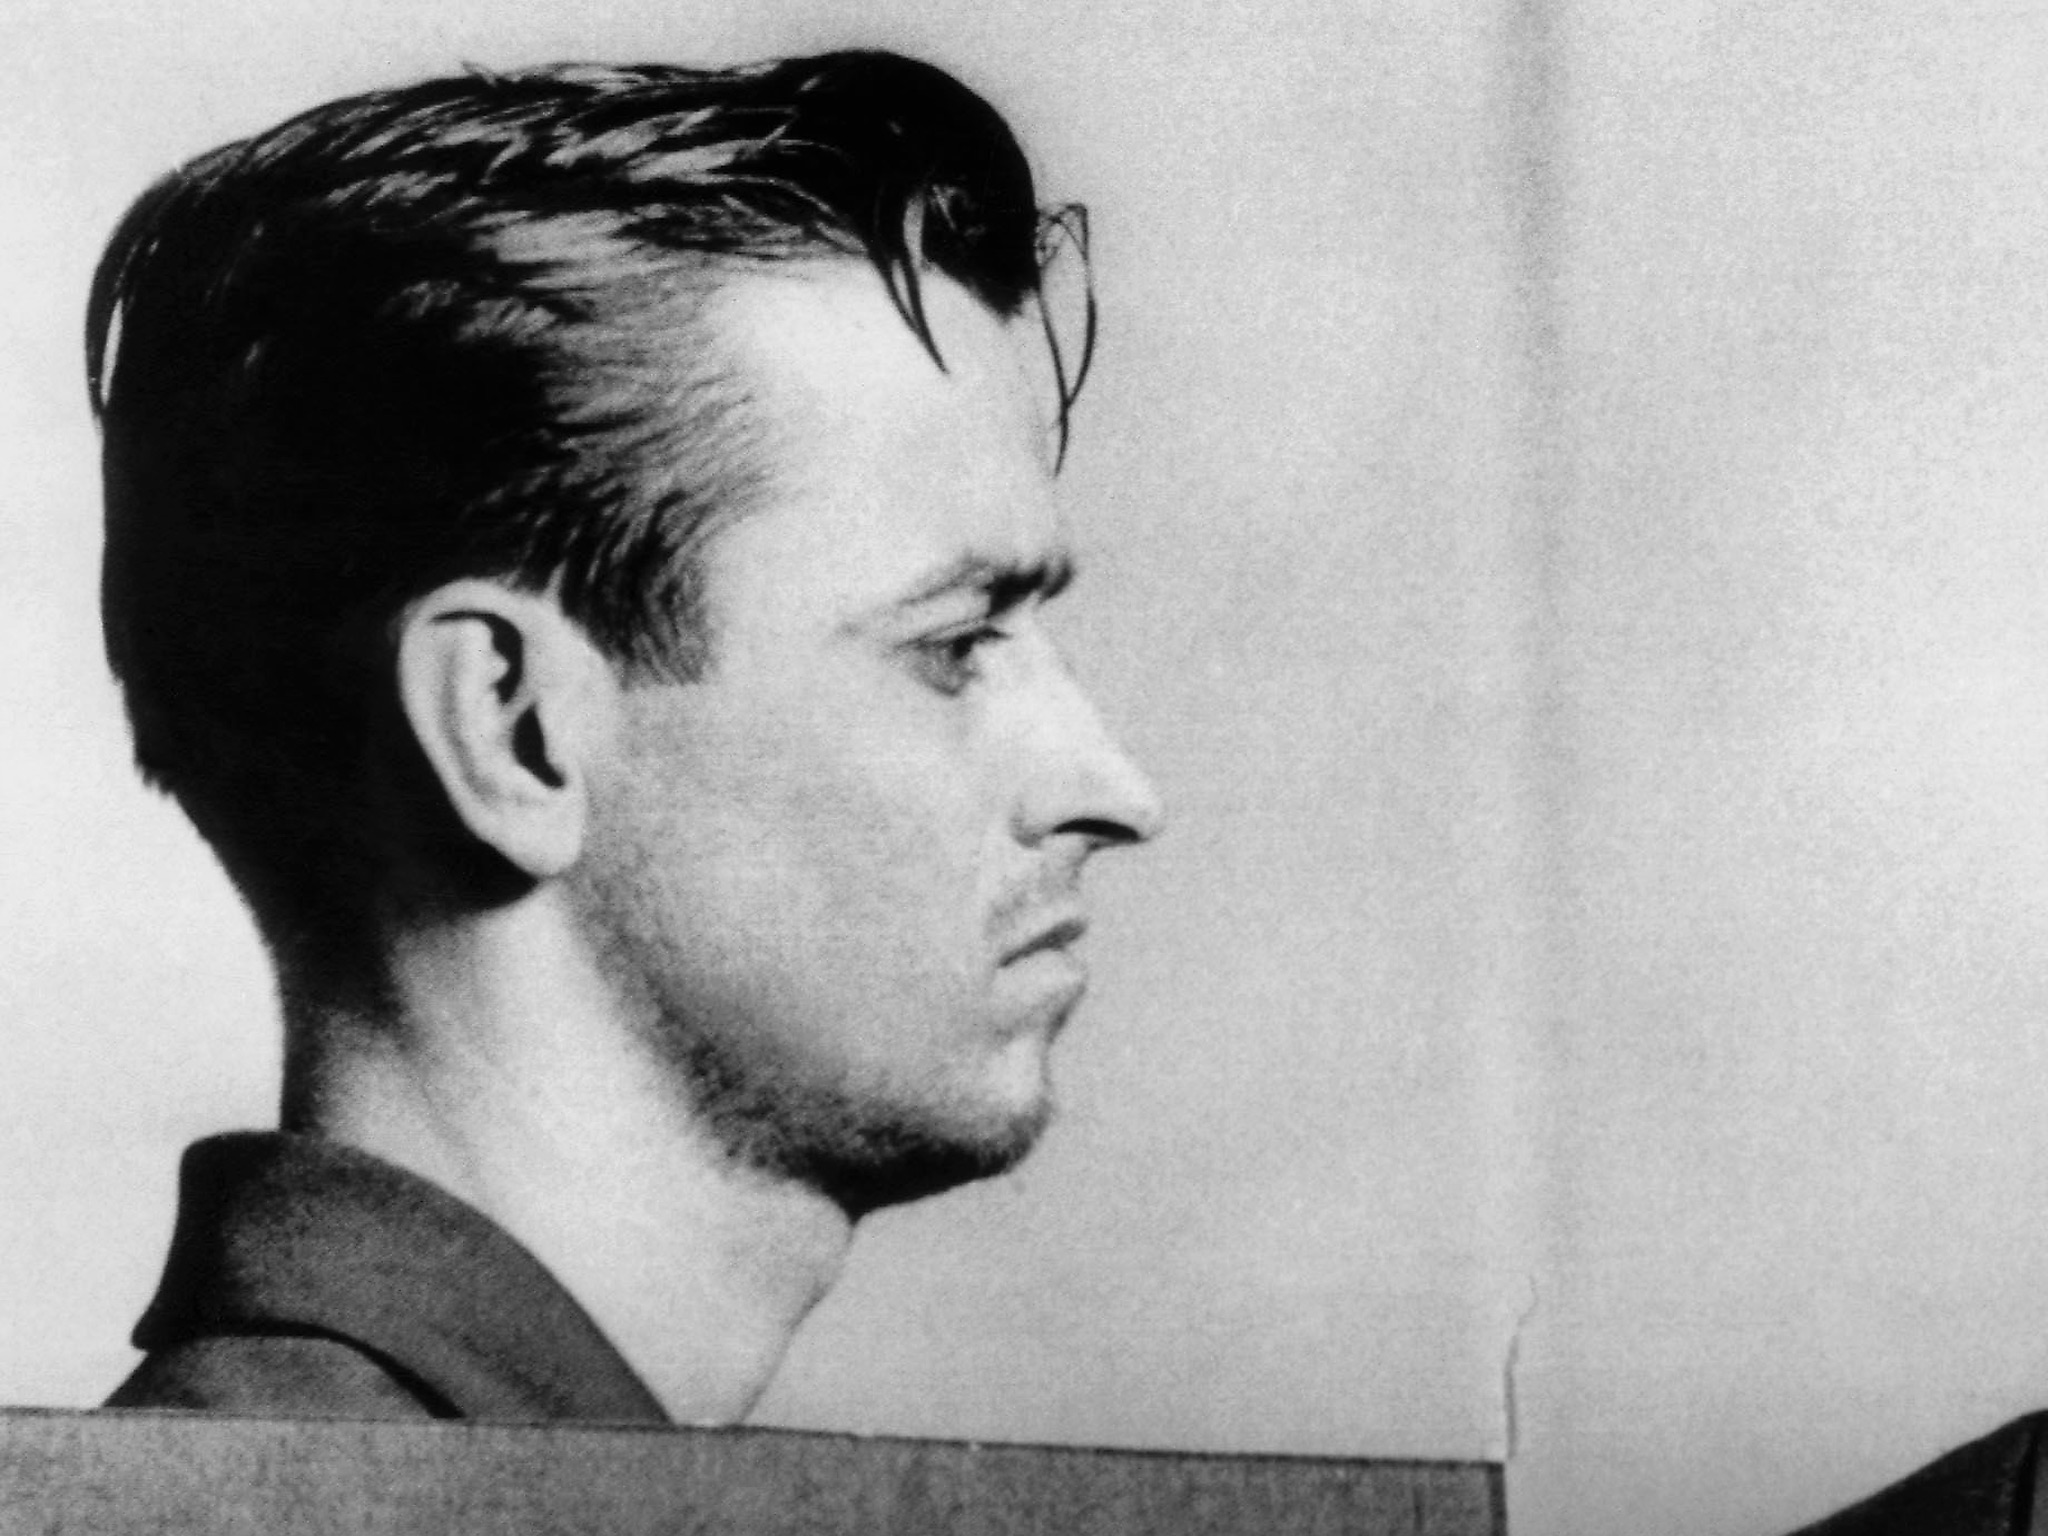 james earl ray Discharged from the military for ineptness and lack of adaptability pleaded guilty to assassinating black civil rights martin luther king on 4 april 1968 at the lorraine motel in memphis recanted his confession three days after his conviction in 2000 a probe instigated by attorney general janet.